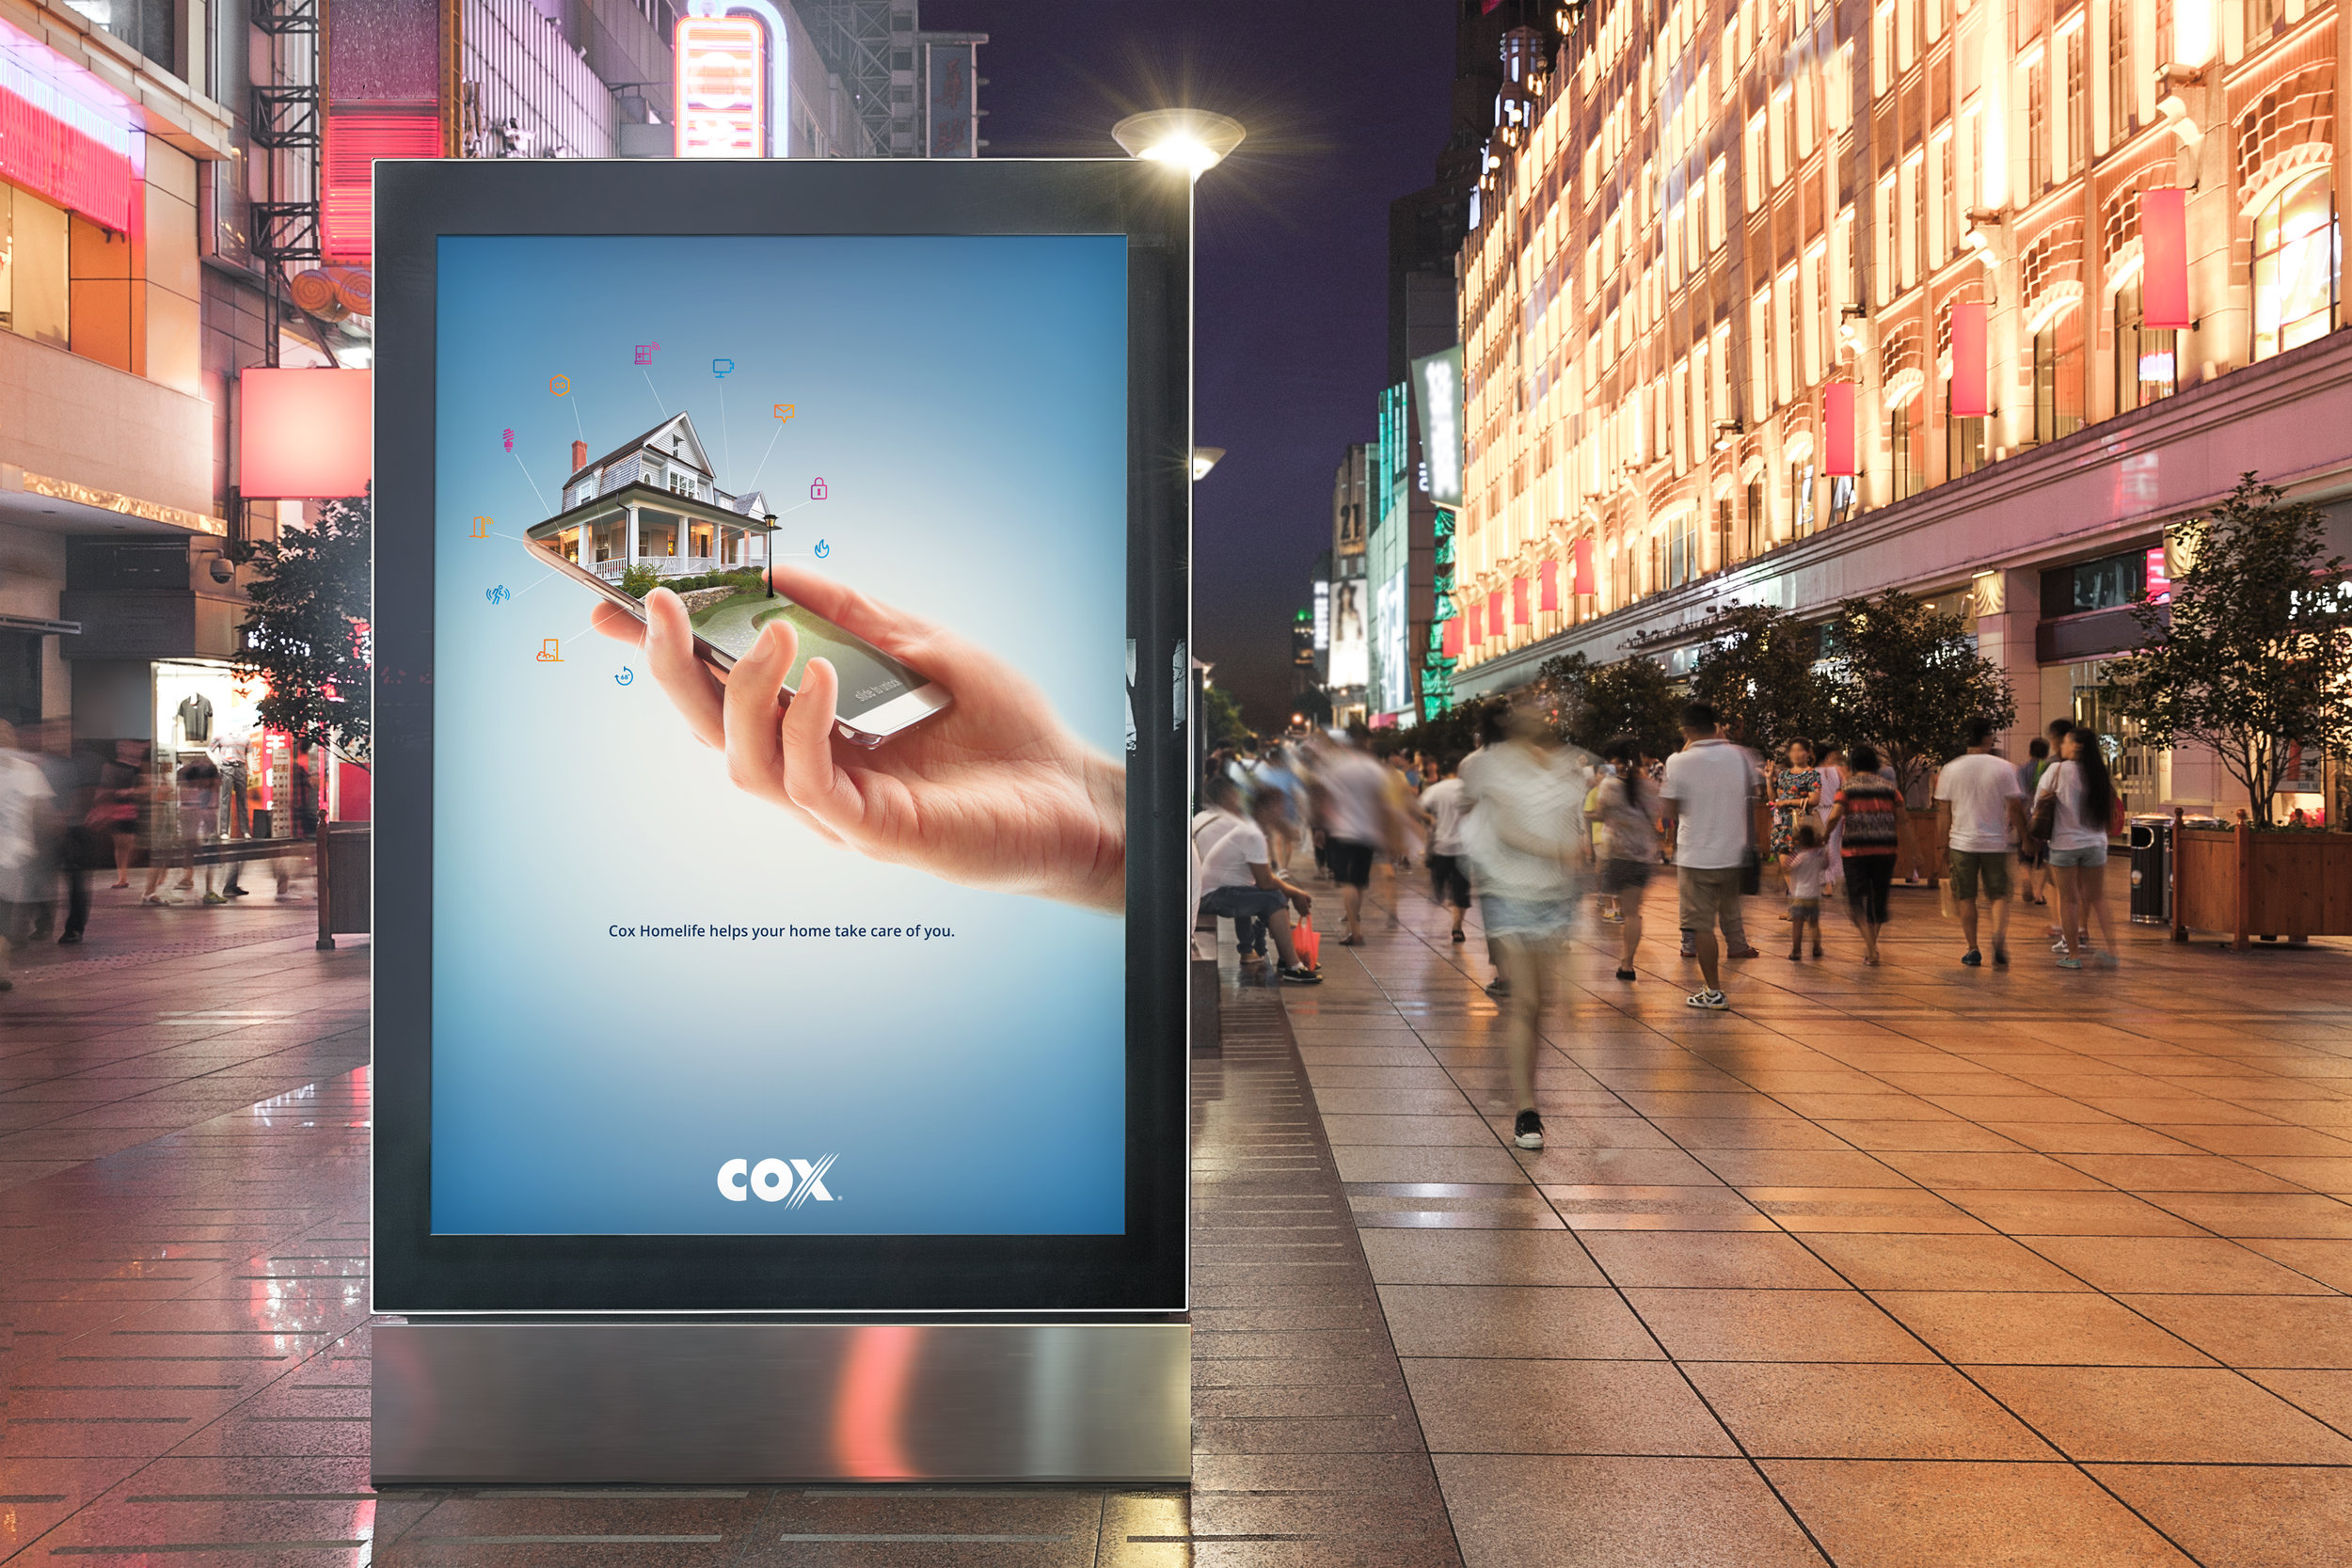 This was a print ad that was released to promote our updated app that enabled a new level of home control.